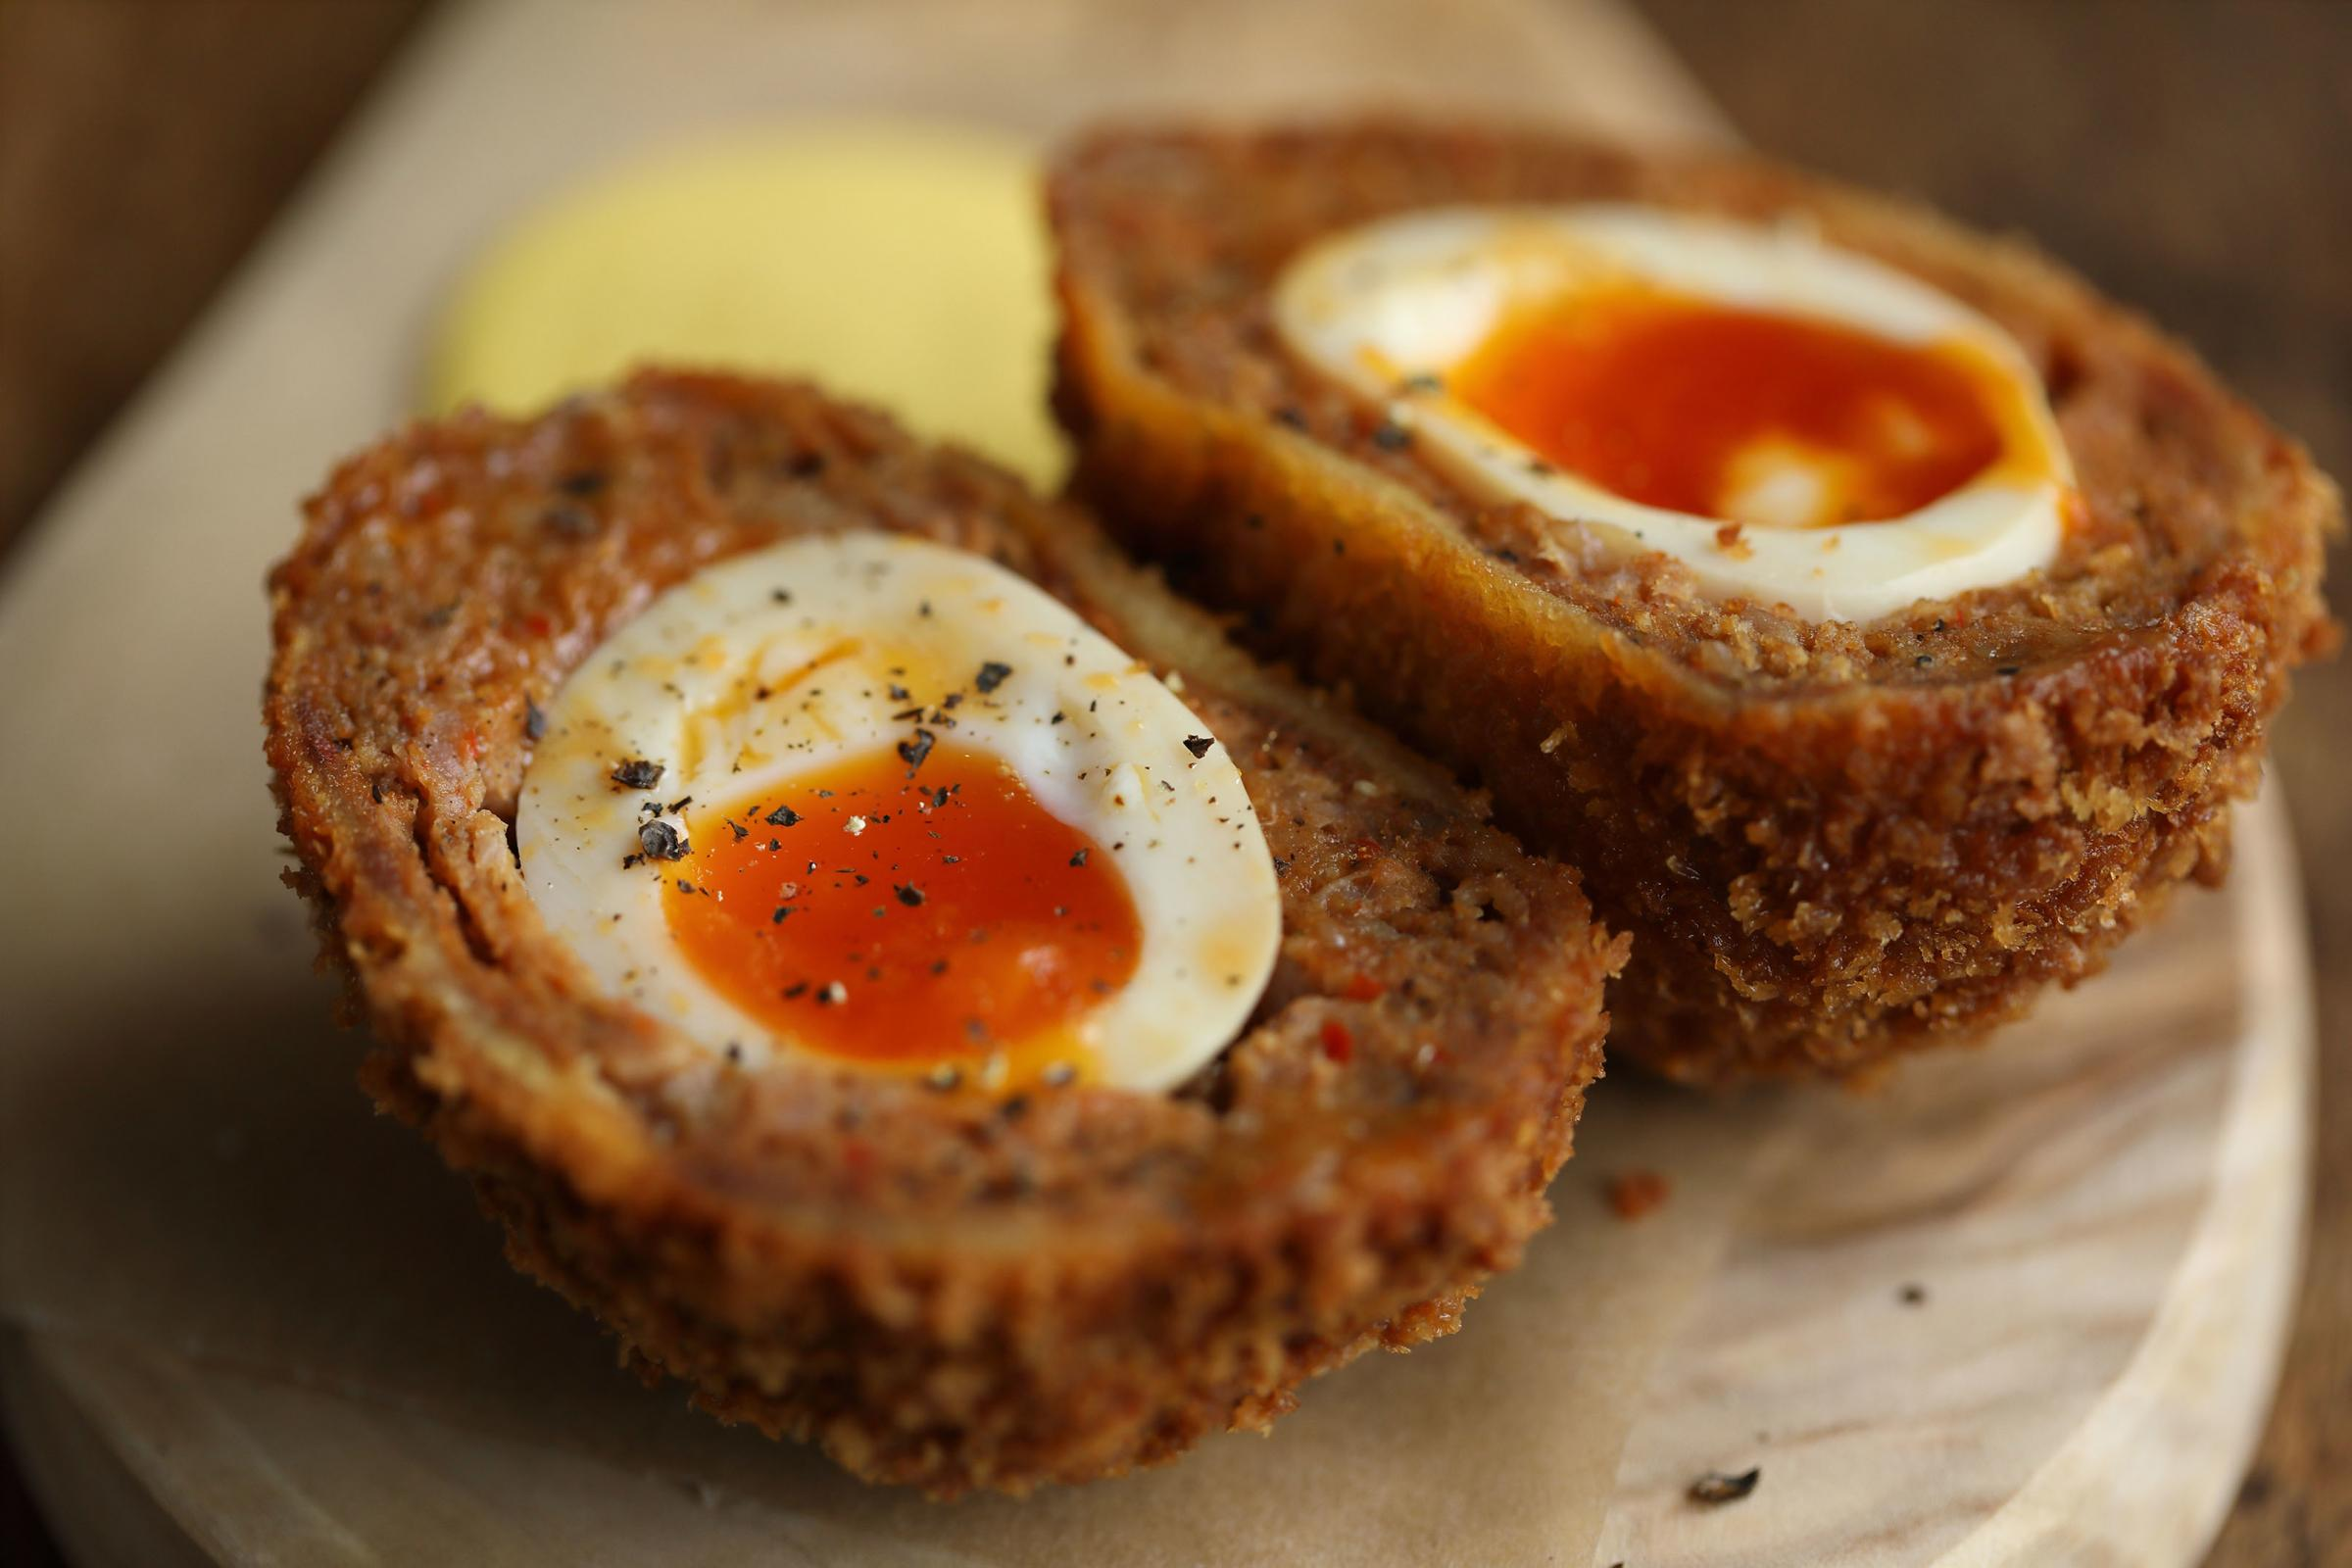 Scotch eggs at The Harcourt Arms.